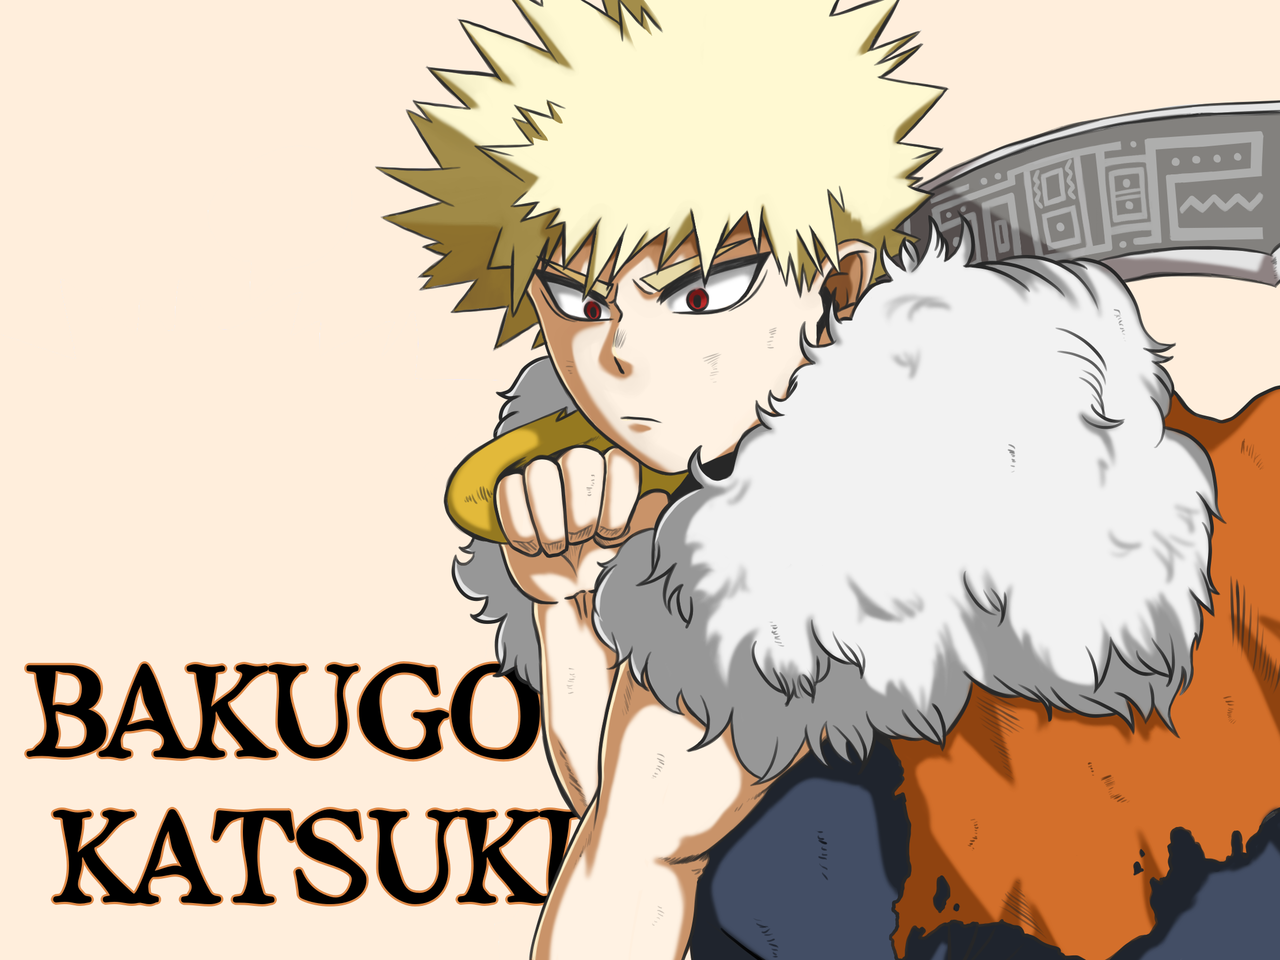 [MHA] Bakugo Katsuki Fan Art